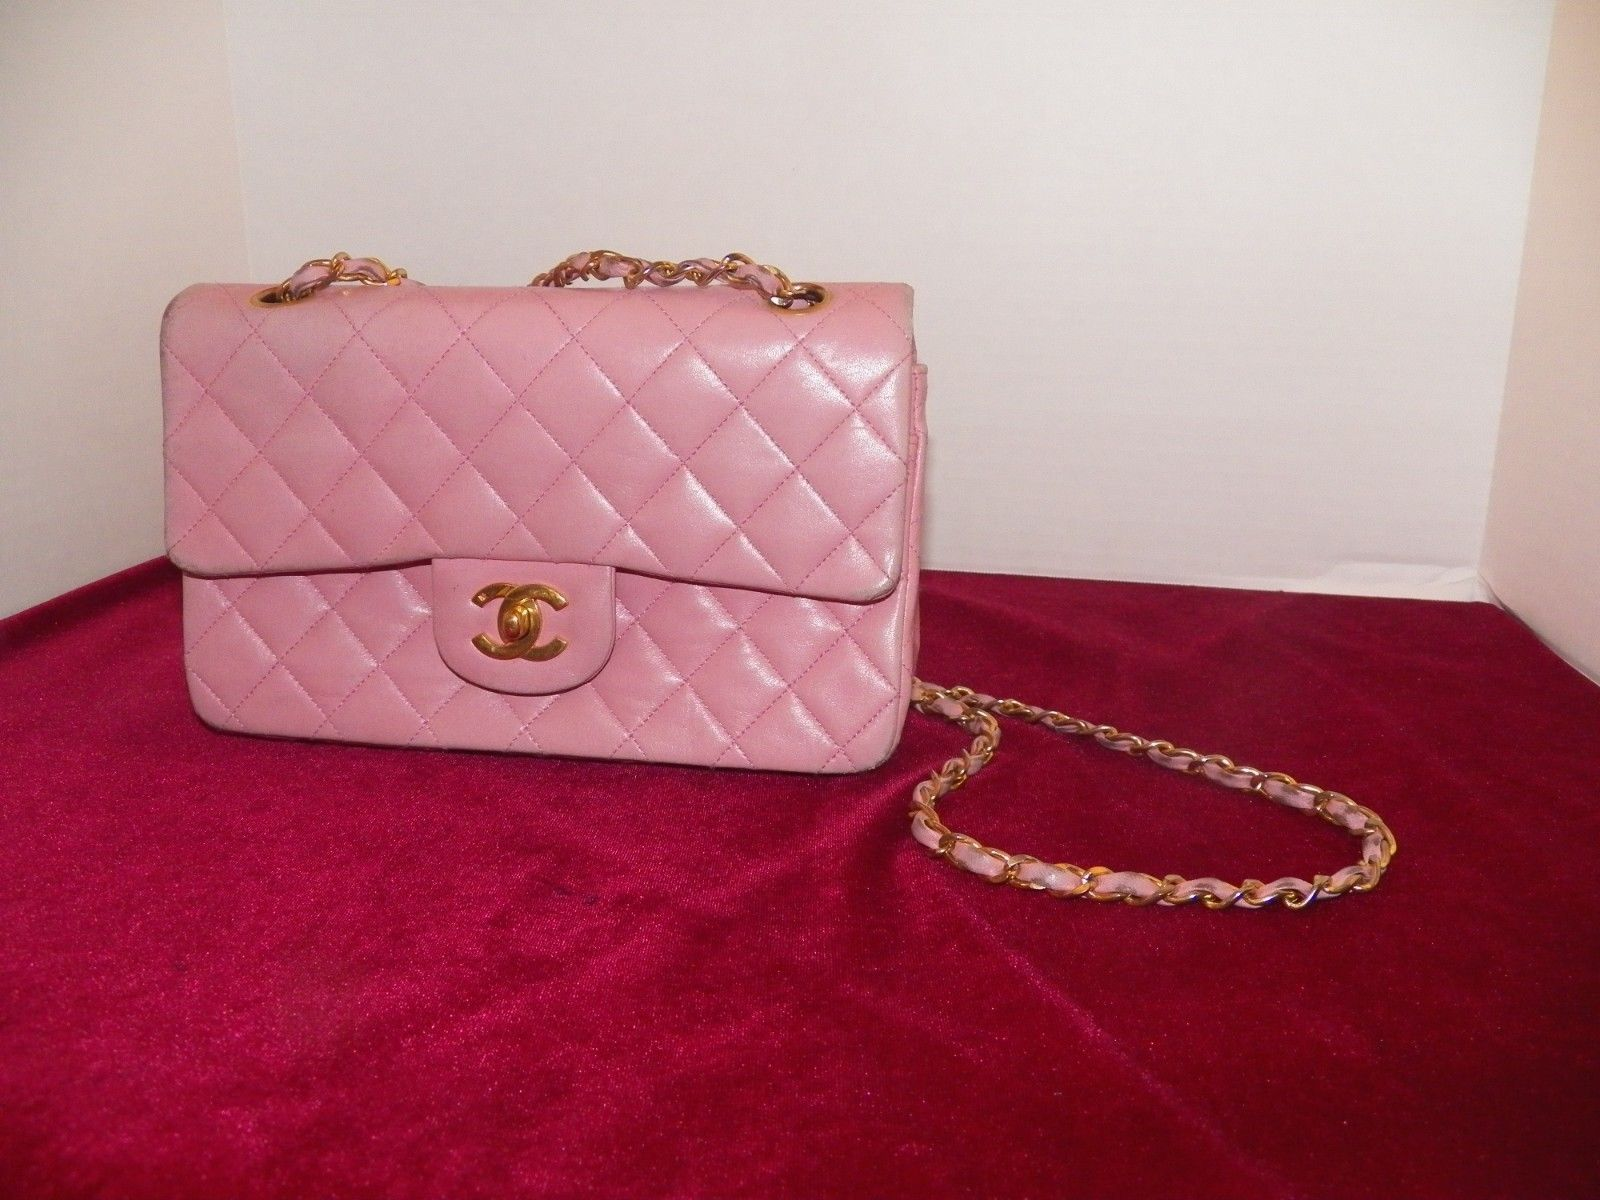 ae34ea8949da00 VINTAGE SMOOTH LAMB LEATHER CHANEL DOUBLE FLAP SHOULDER BAG IN PINK ...